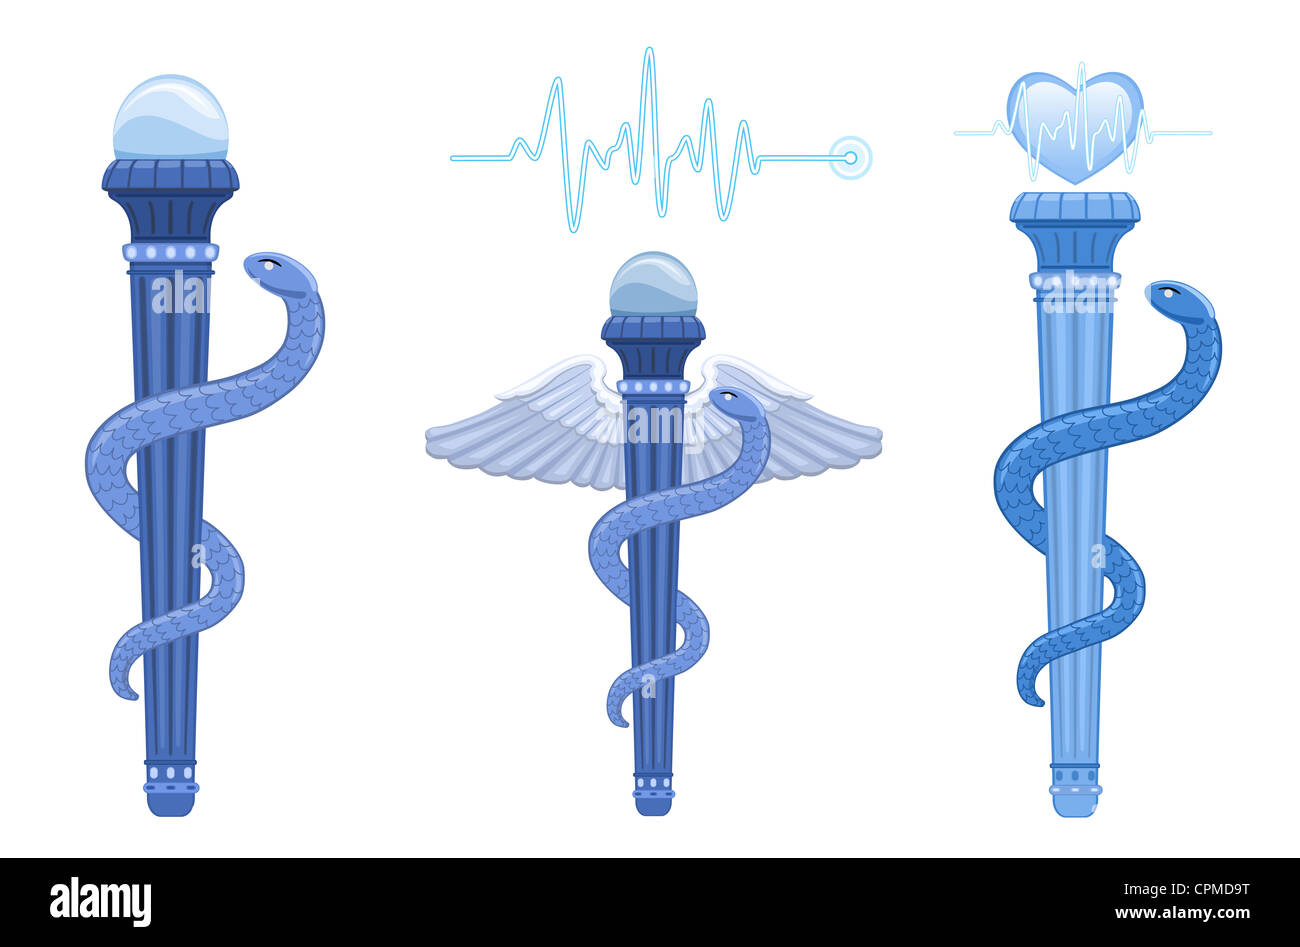 Caduceus Staff Of Hermes Stock Photos Caduceus Staff Of Hermes